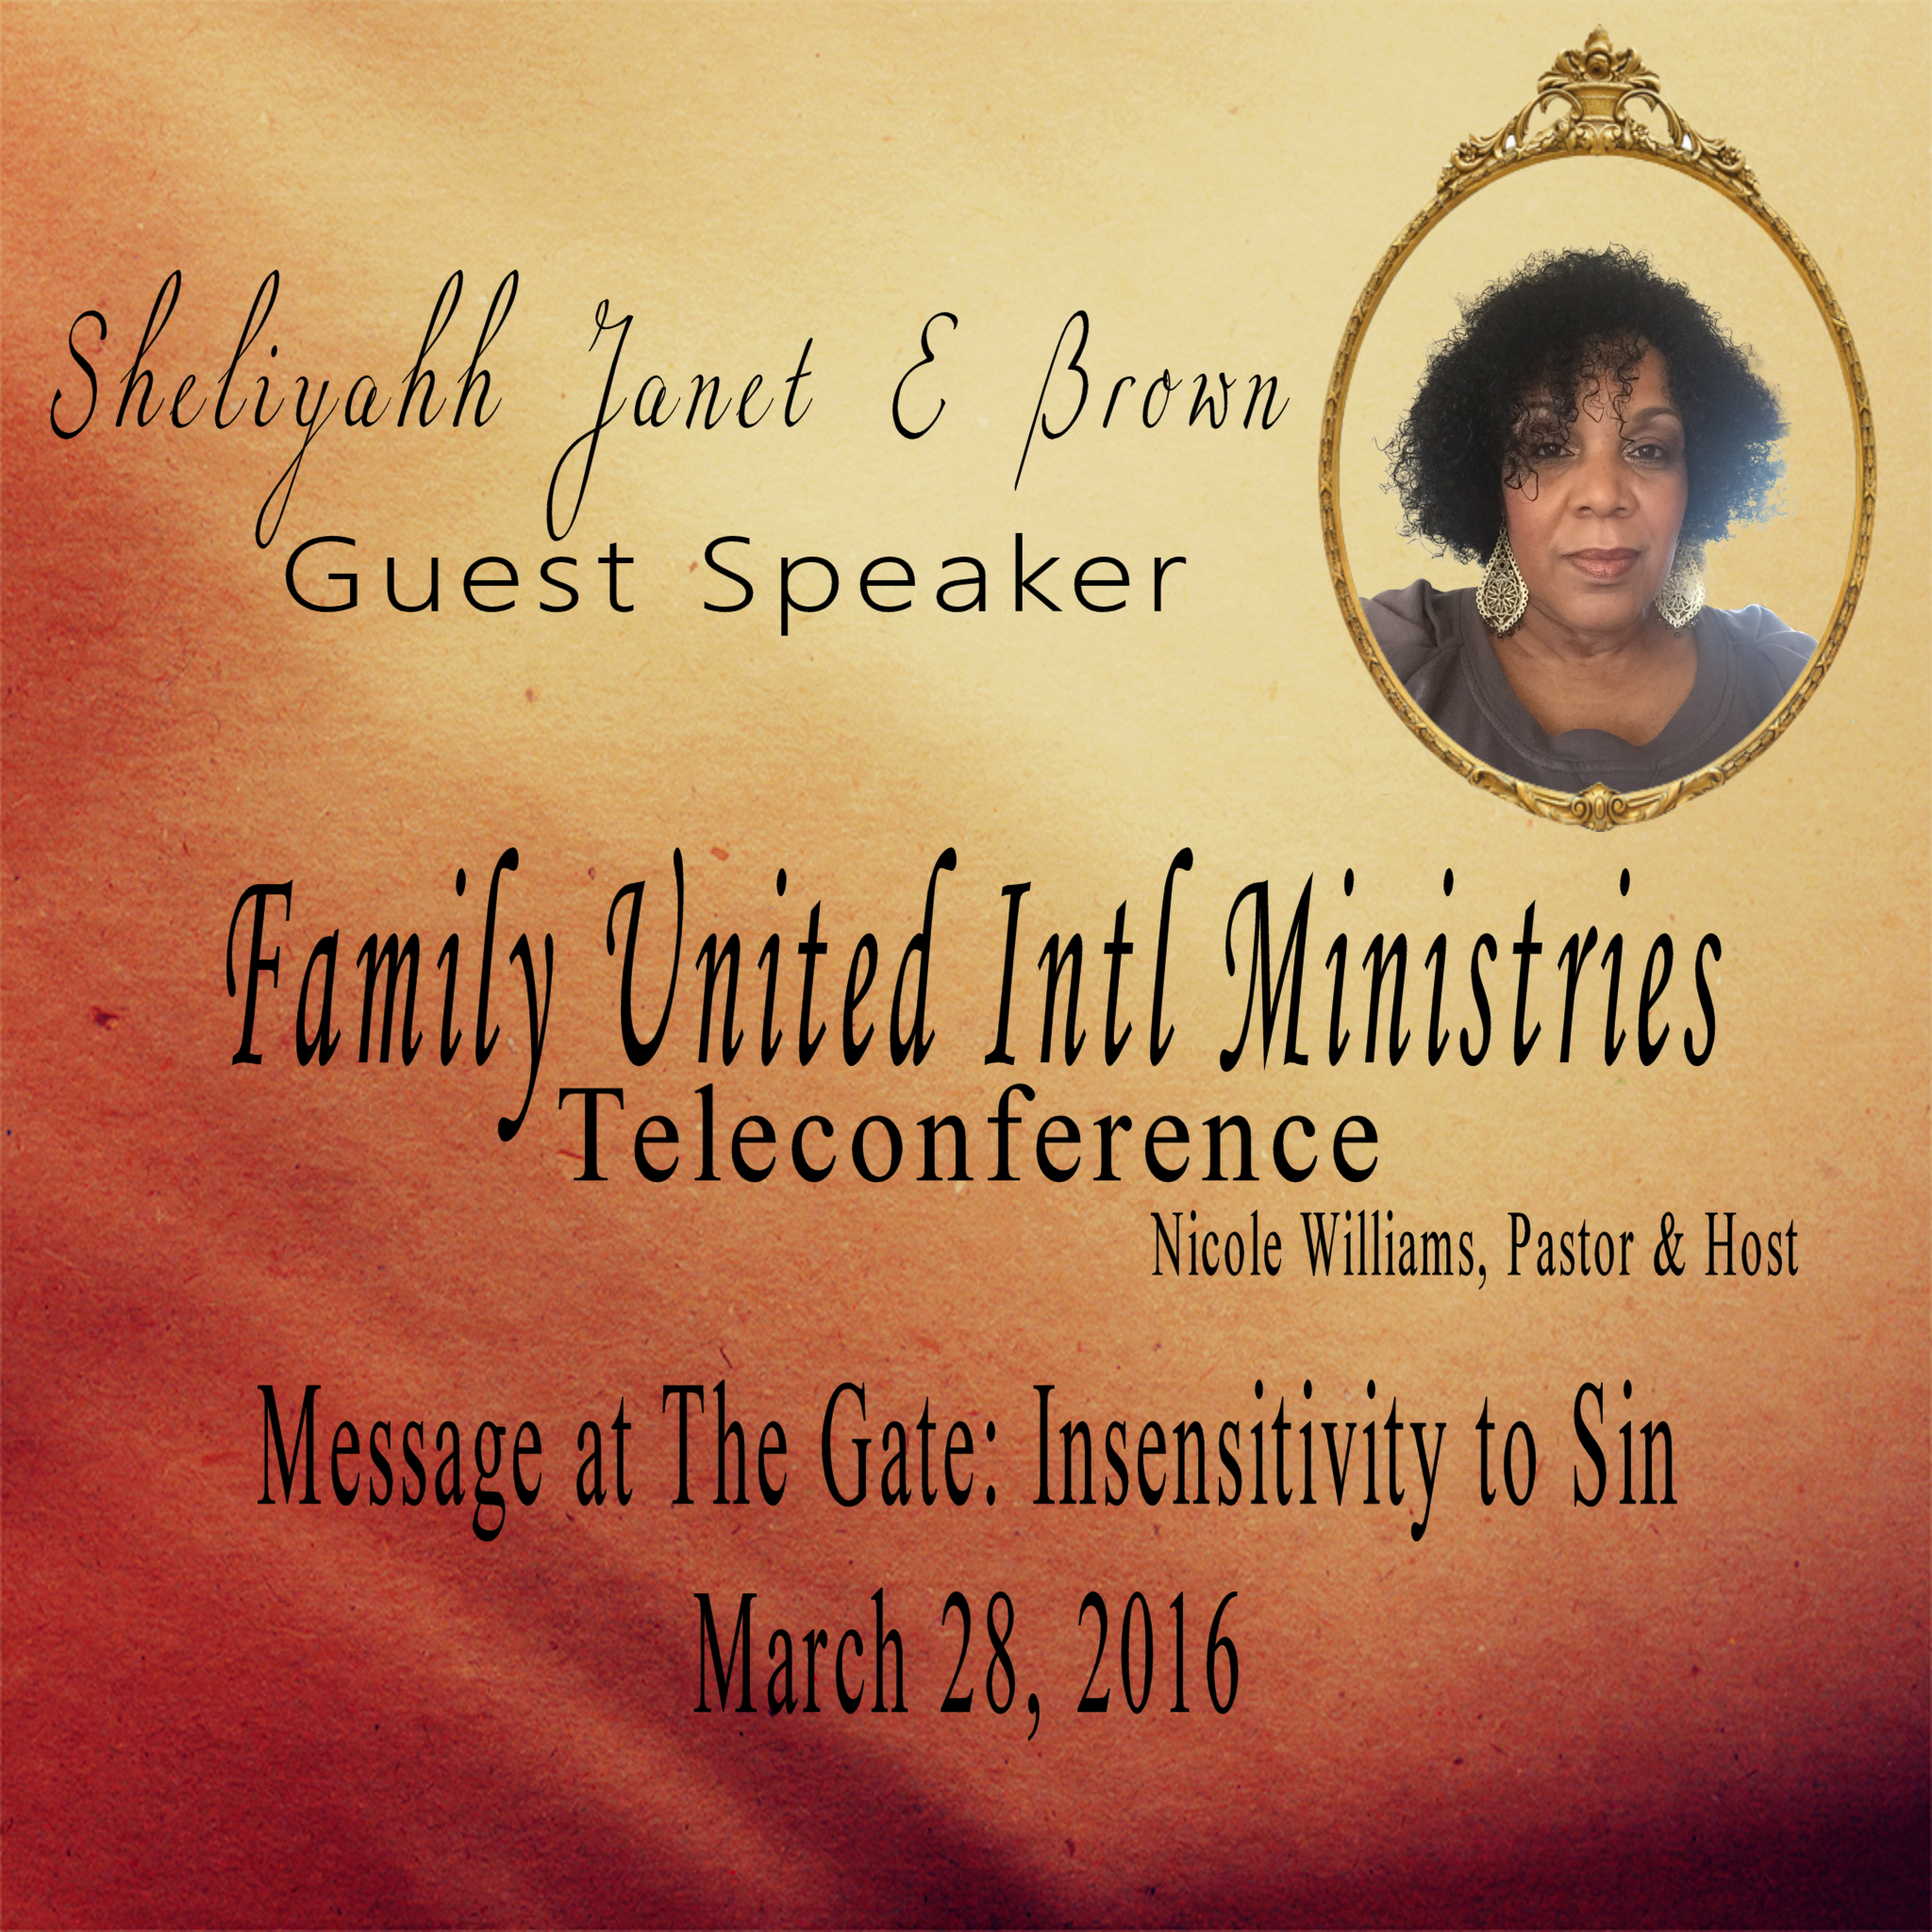 Message at The Gate: Insensitivity to Sin